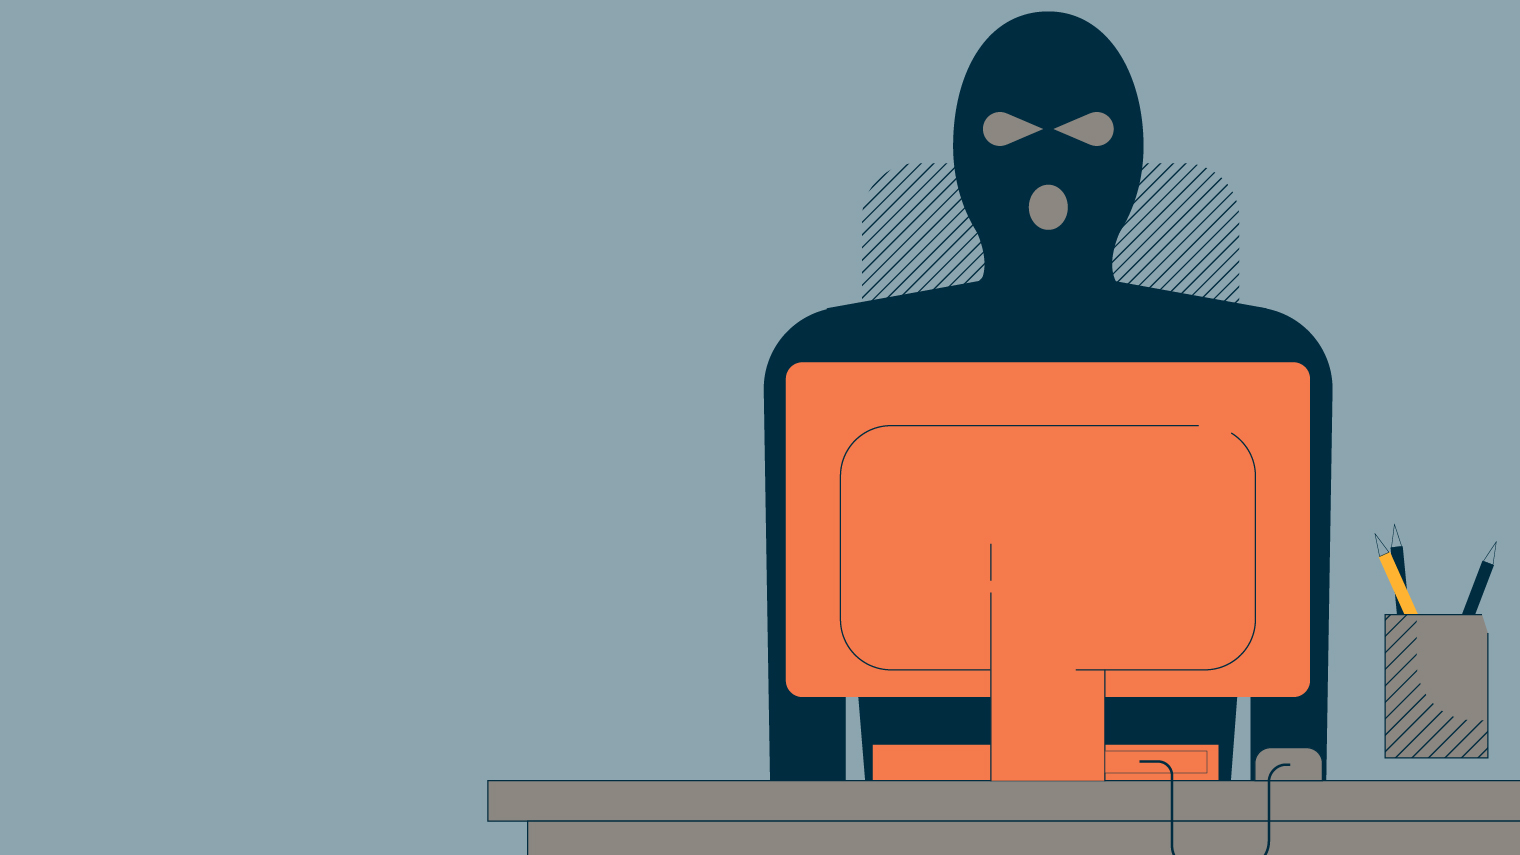 A new type of fraudster is targeting retailers and online shoppers